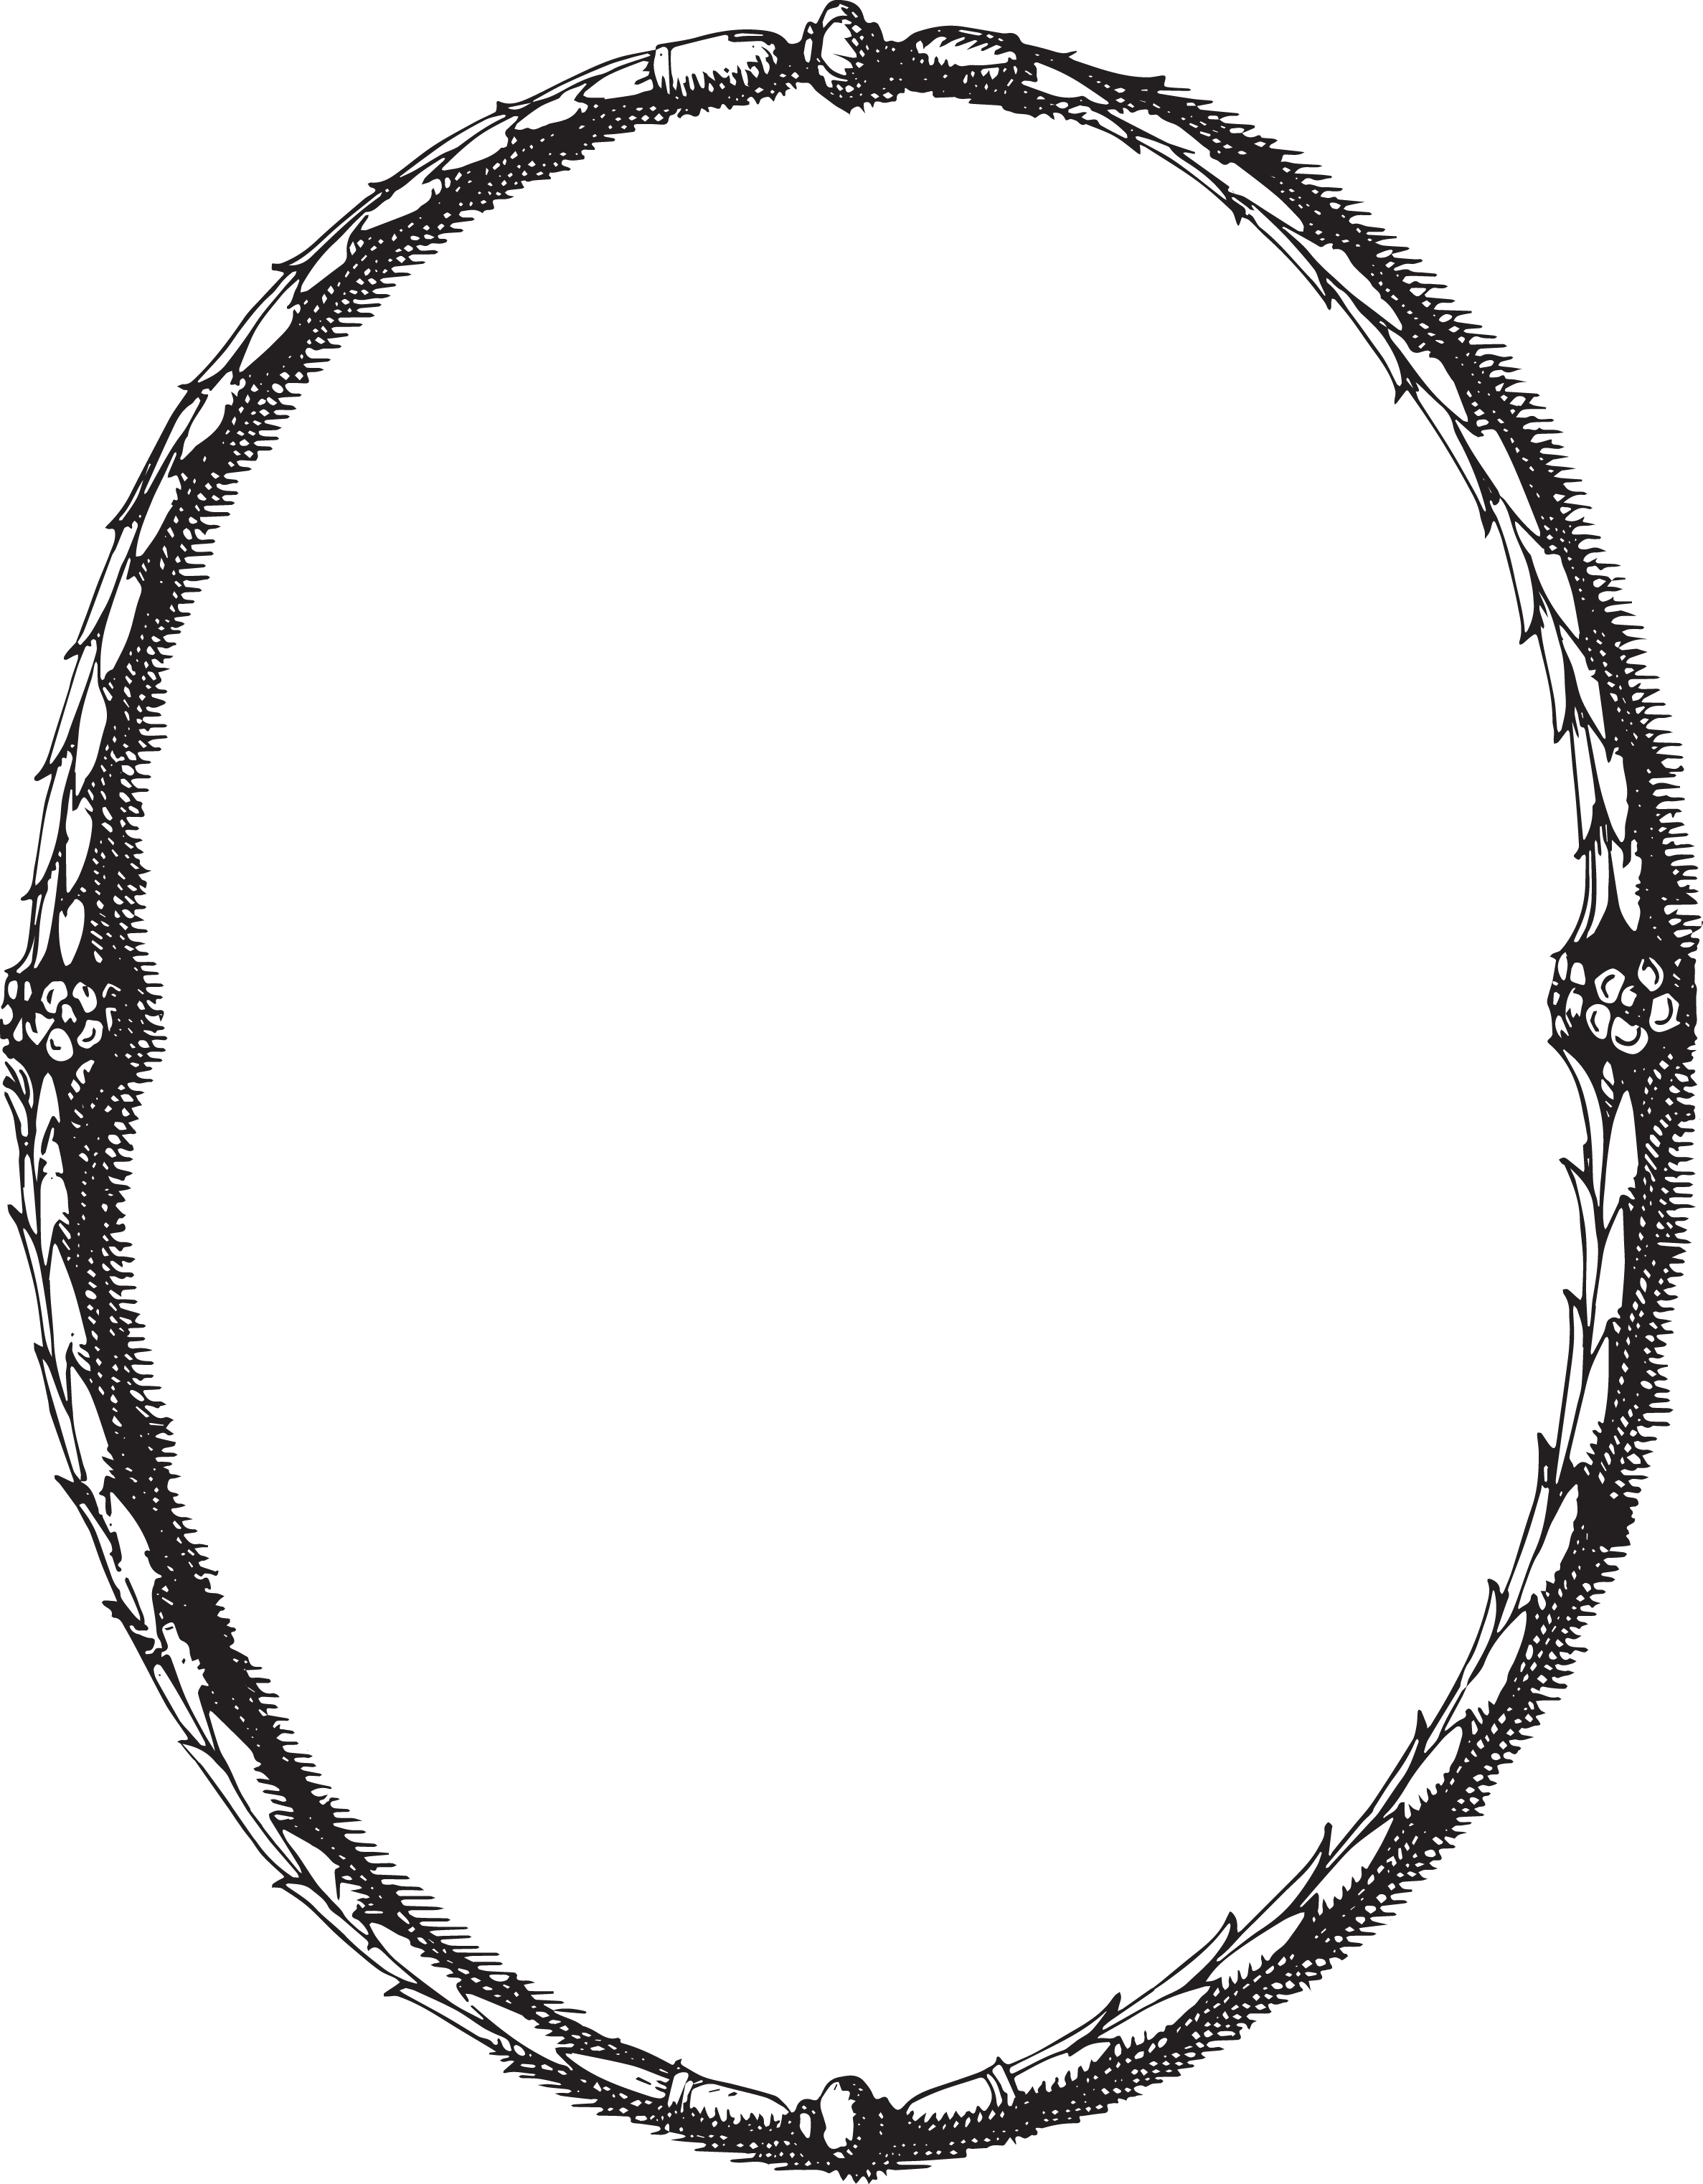 Free oval cliparts png royalty free download Oval Clipart | Free download best Oval Clipart on ClipArtMag.com png royalty free download